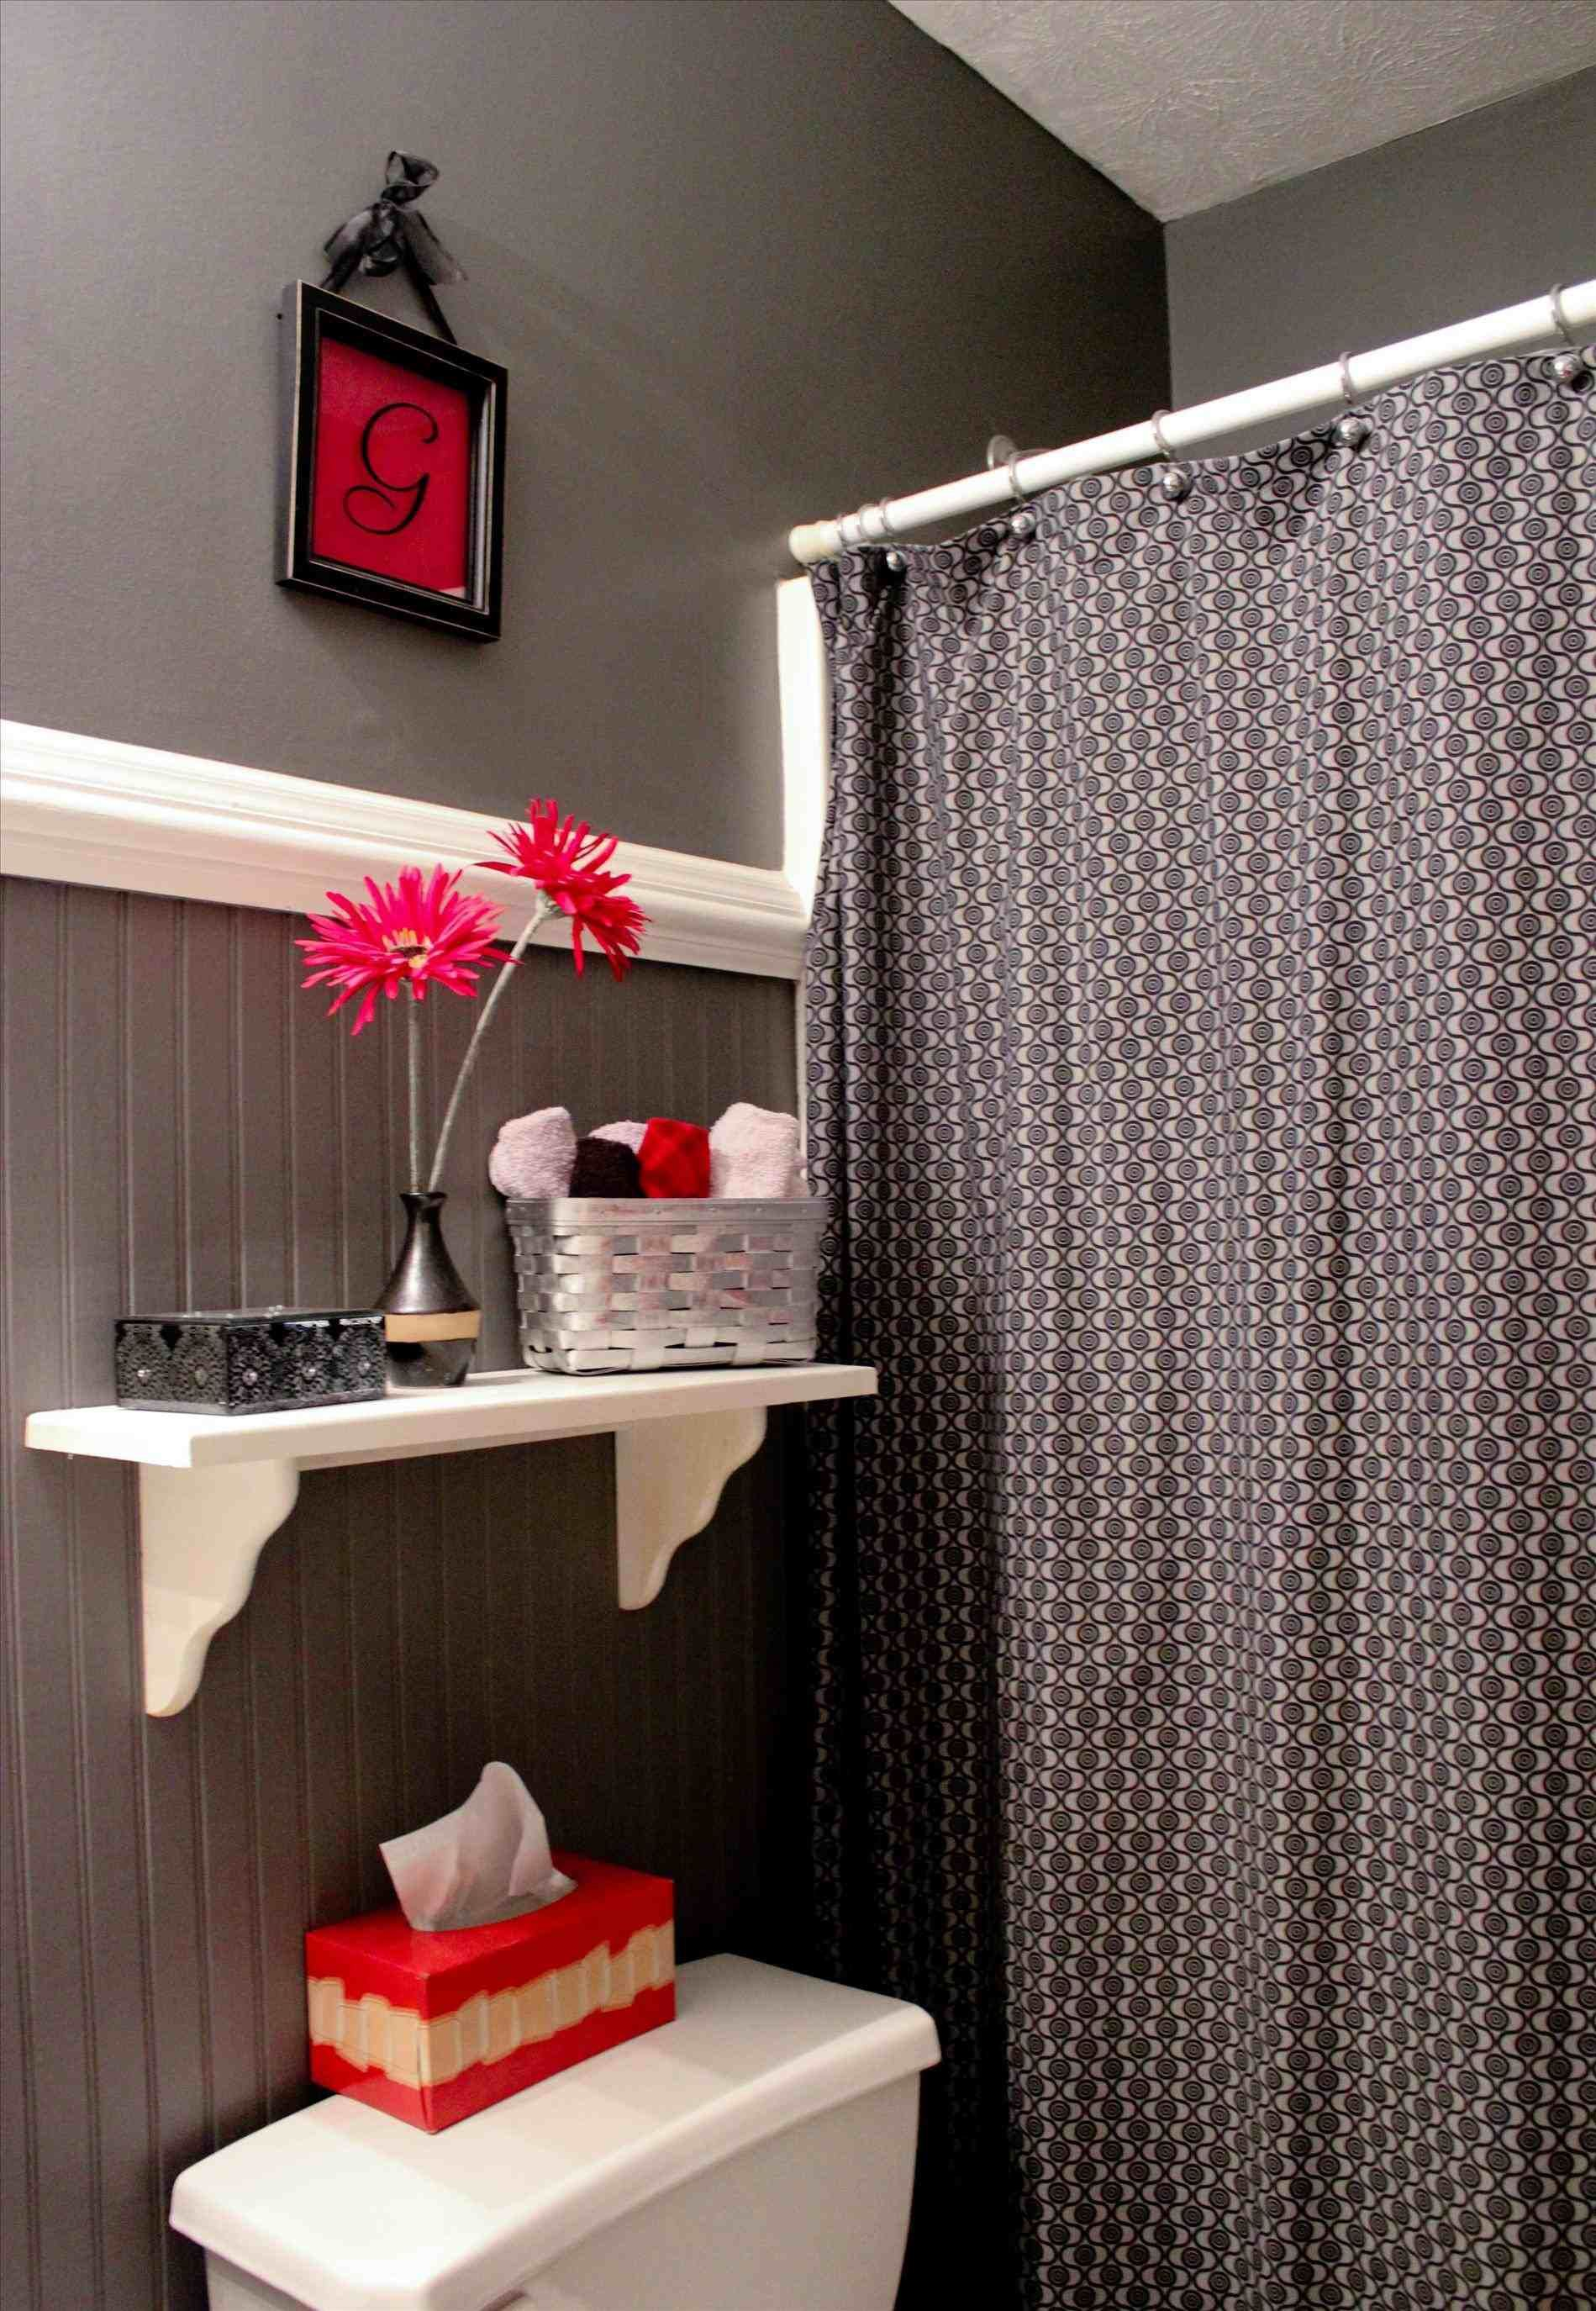 Red And Black Bathroom Sets Bathroom Red Red Bathroom Decor Black Bathroom Decor